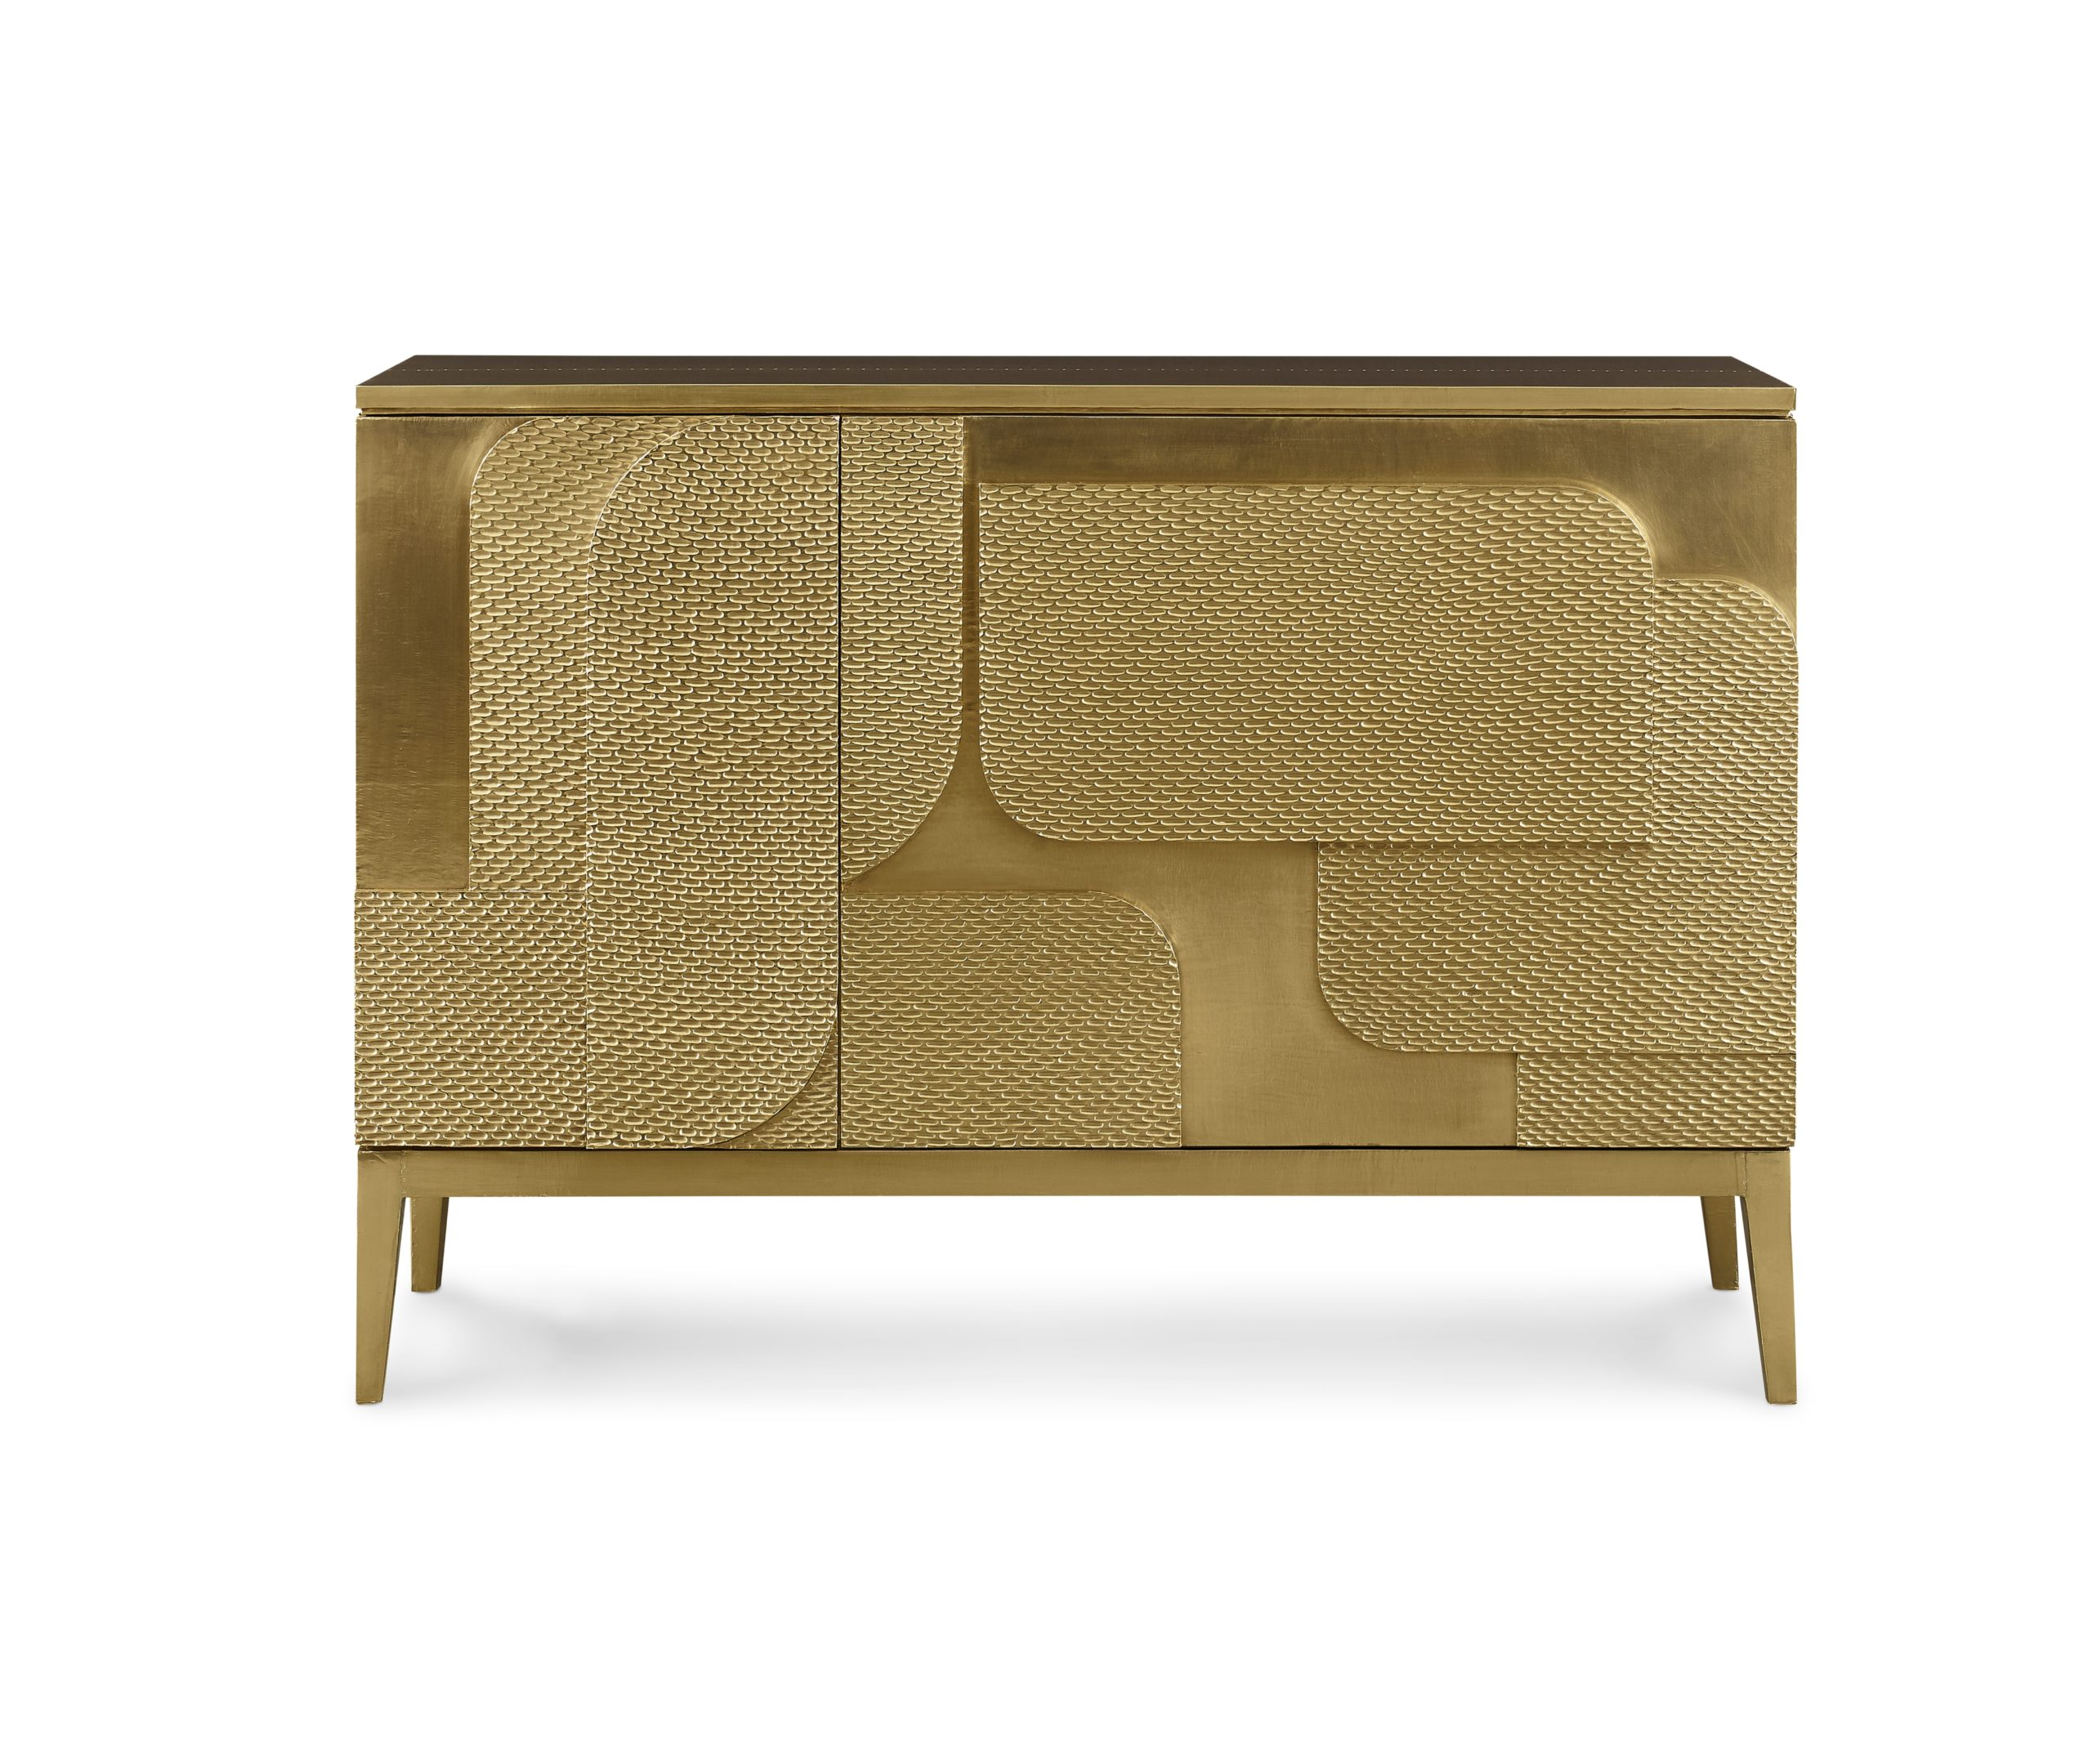 Baker_products_WNWN_milanese_chest_BAA3073_FRONT-scaled-2